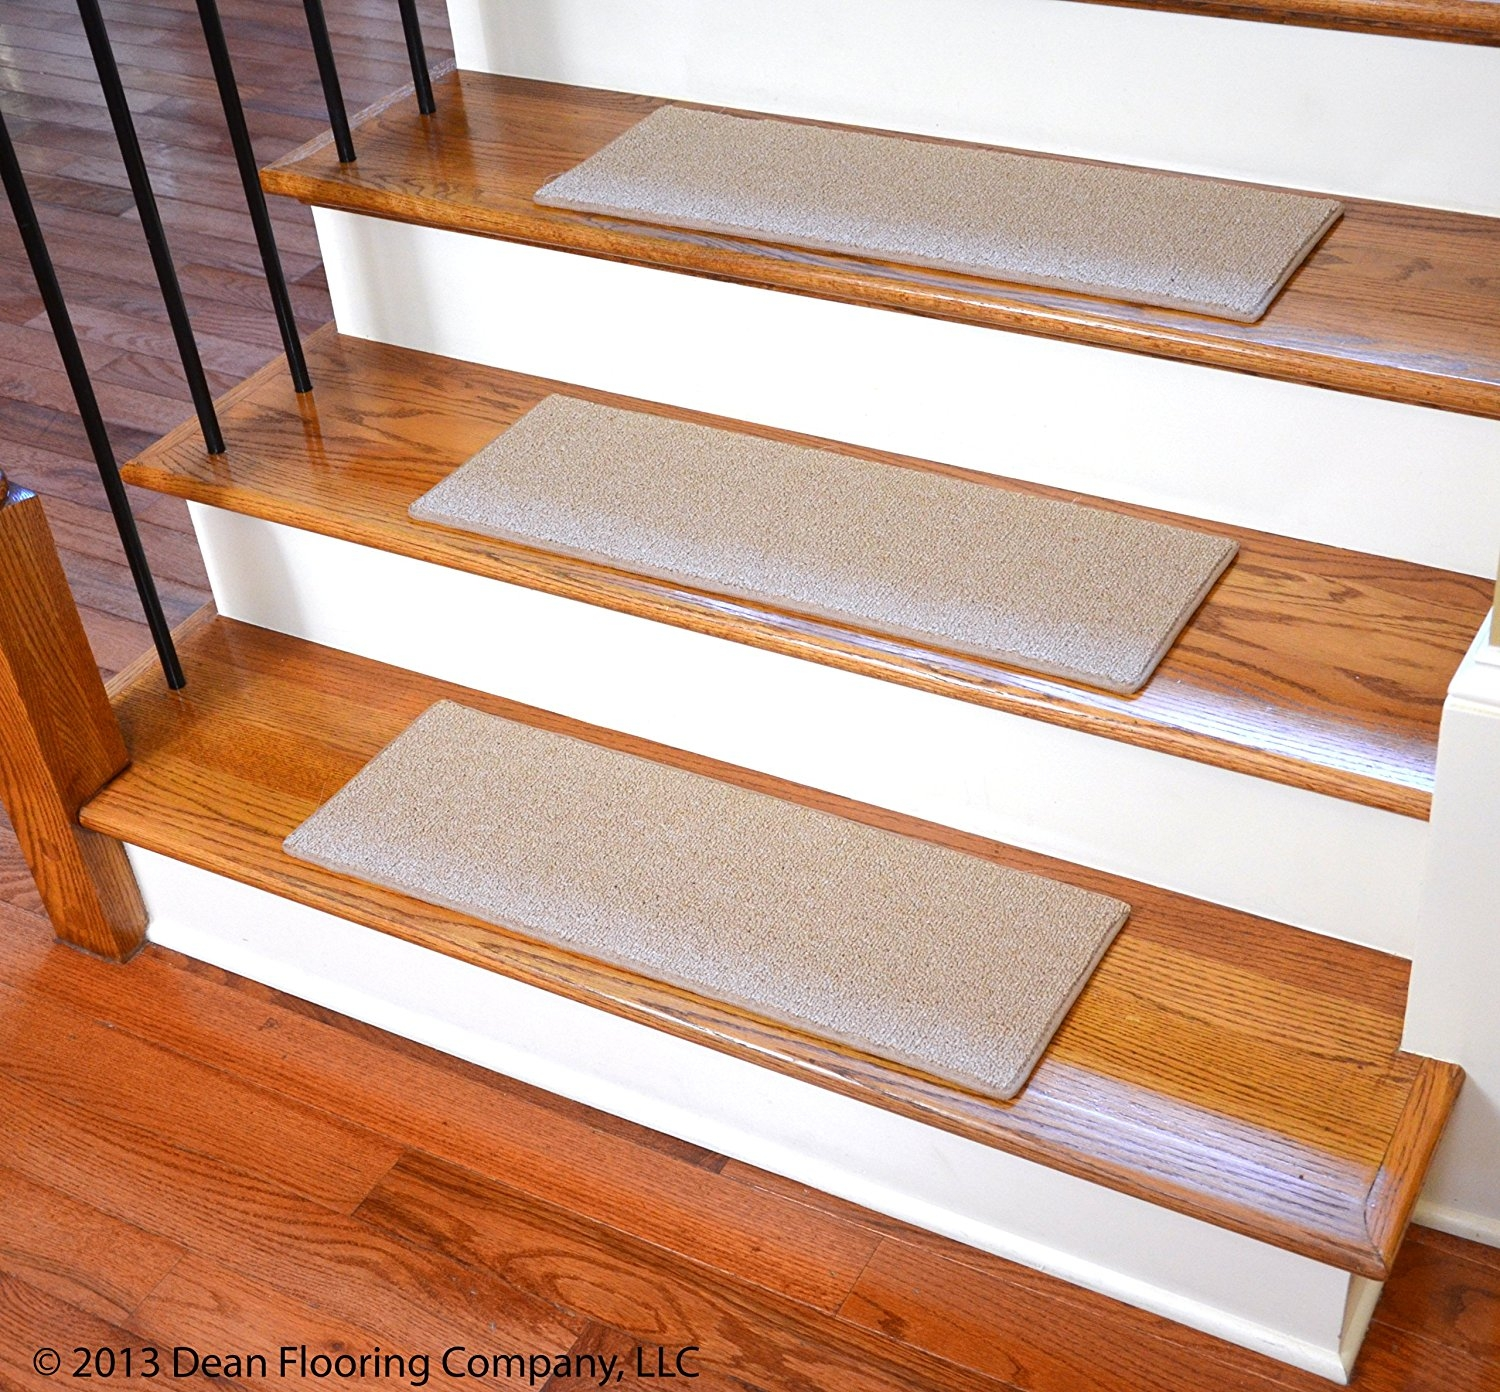 Dean Non Slip Tape Free Pet Friendly Diy Carpet Stair Treadsrugs Throughout Stair Tread Rugs For Dogs (View 6 of 20)